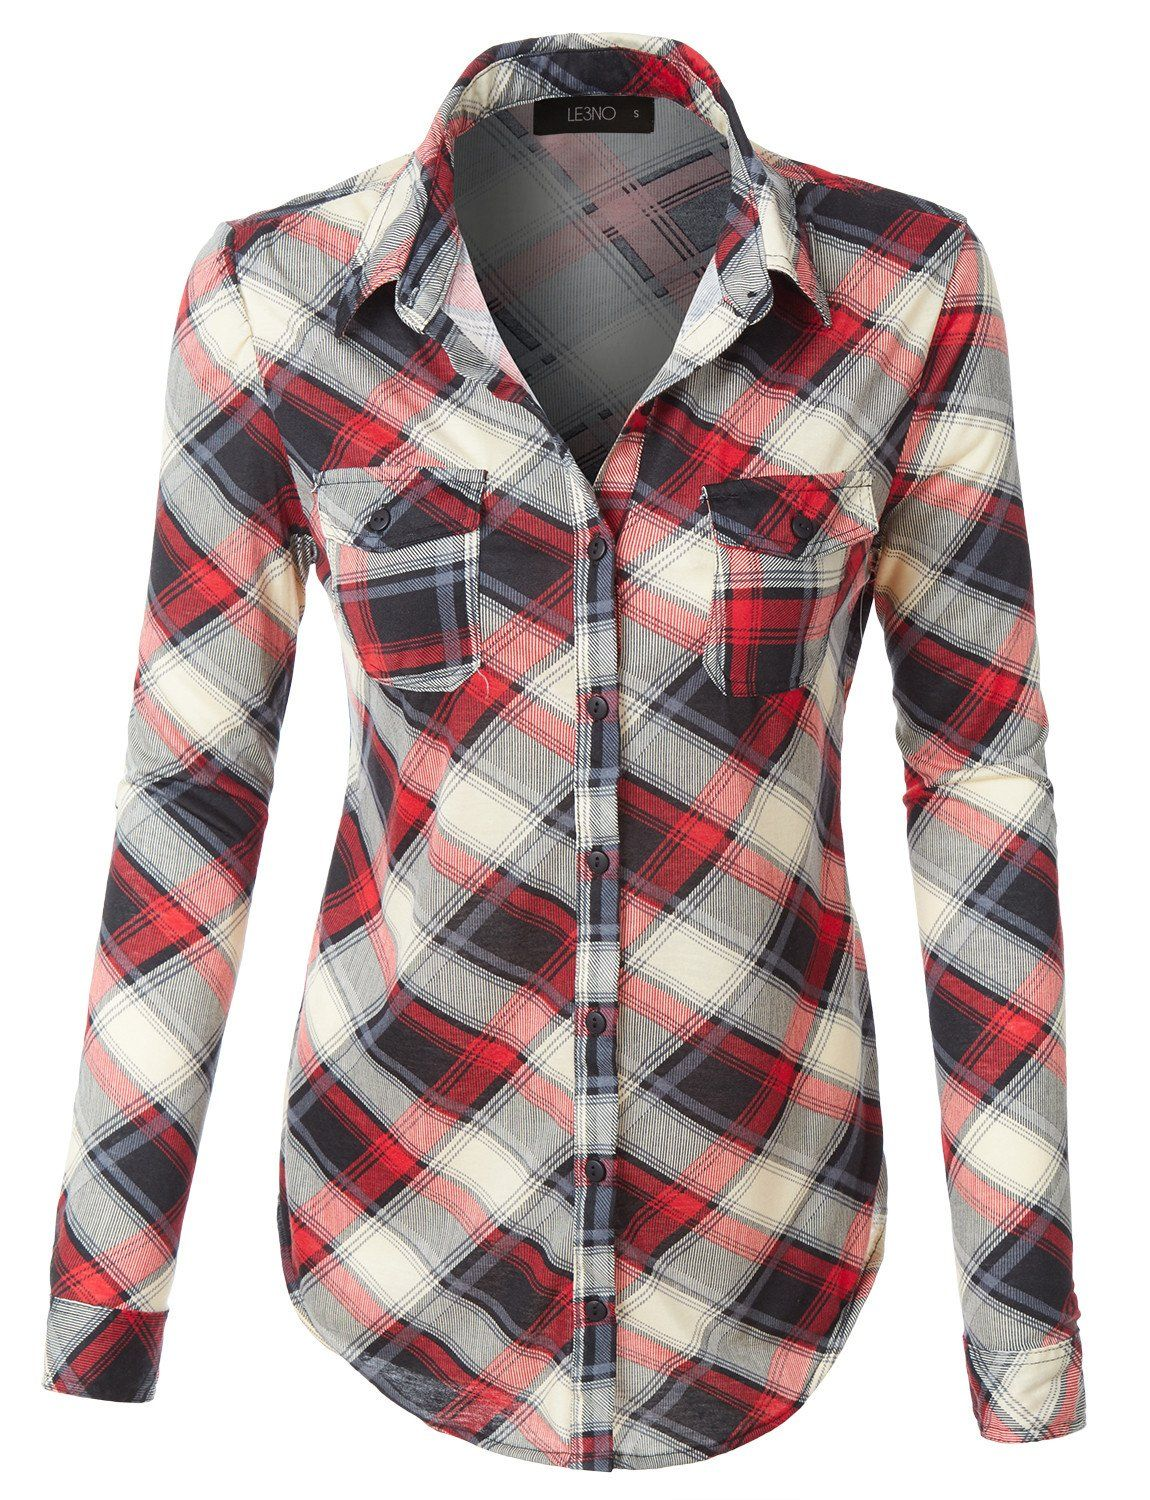 Navy blue flannel shirt womens  Womens Lightweight Plaid Button Down Shirt with Roll Up Sleeves